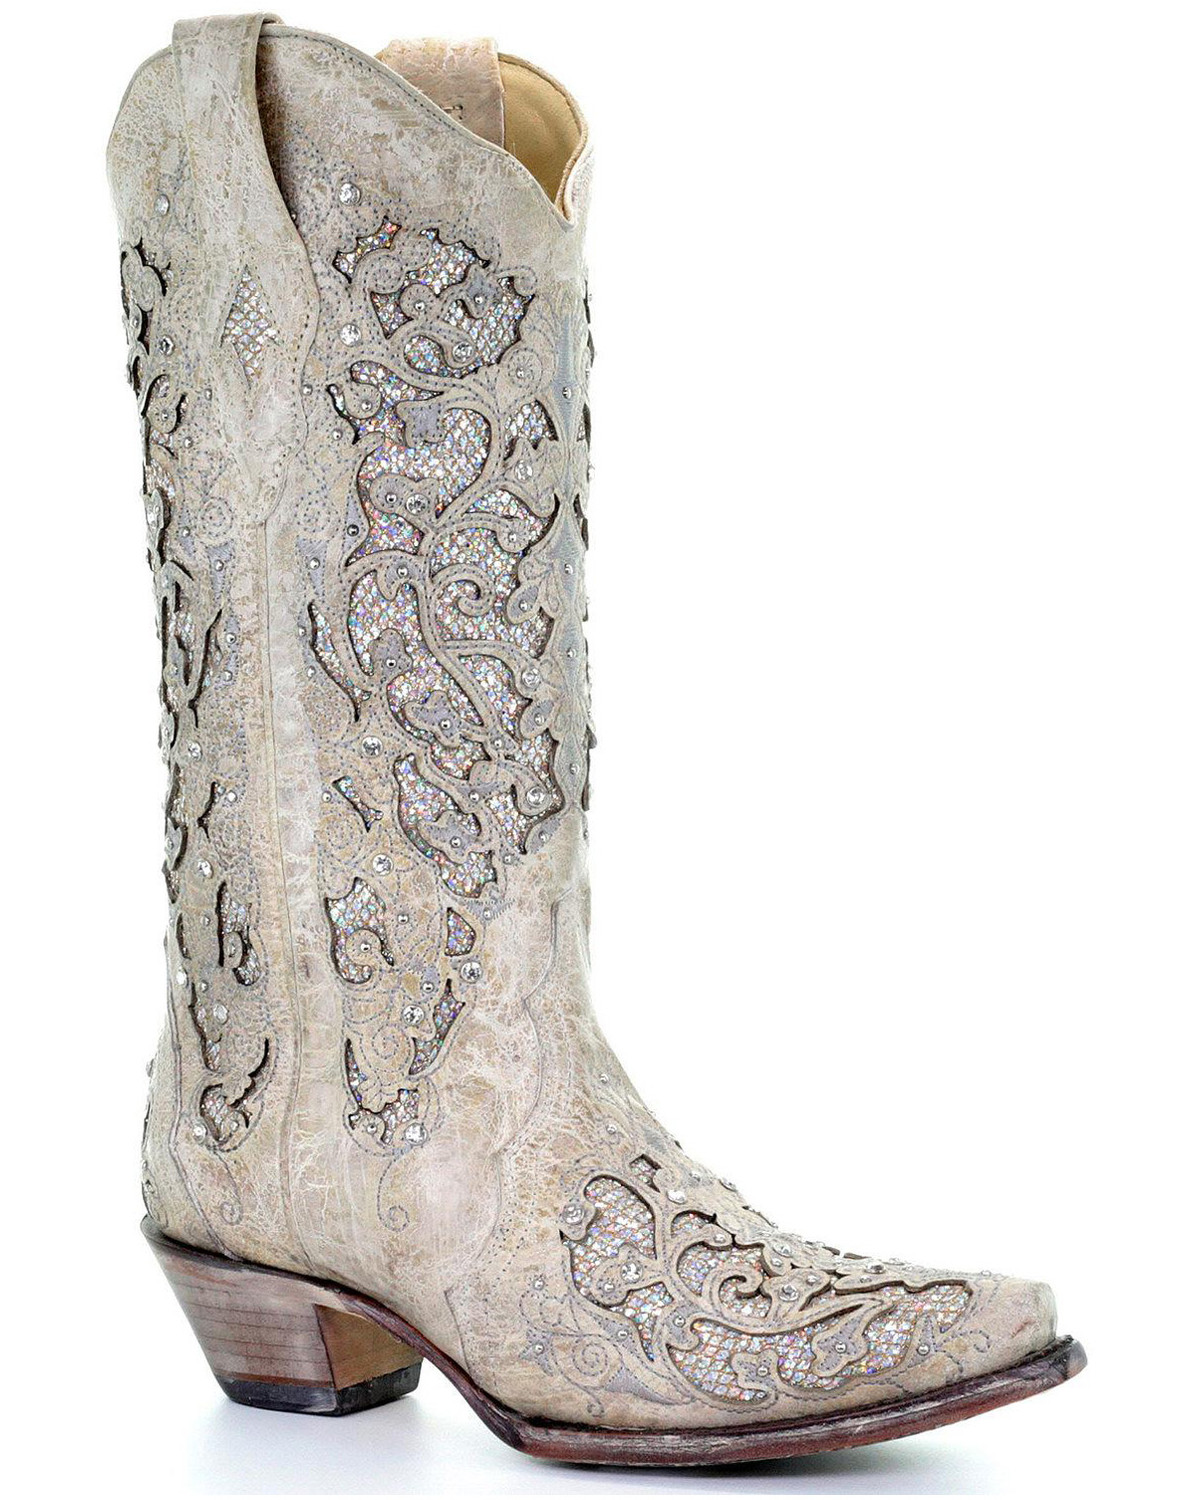 Corral Womens Glitter Inlay And Crystals Wedding Boots